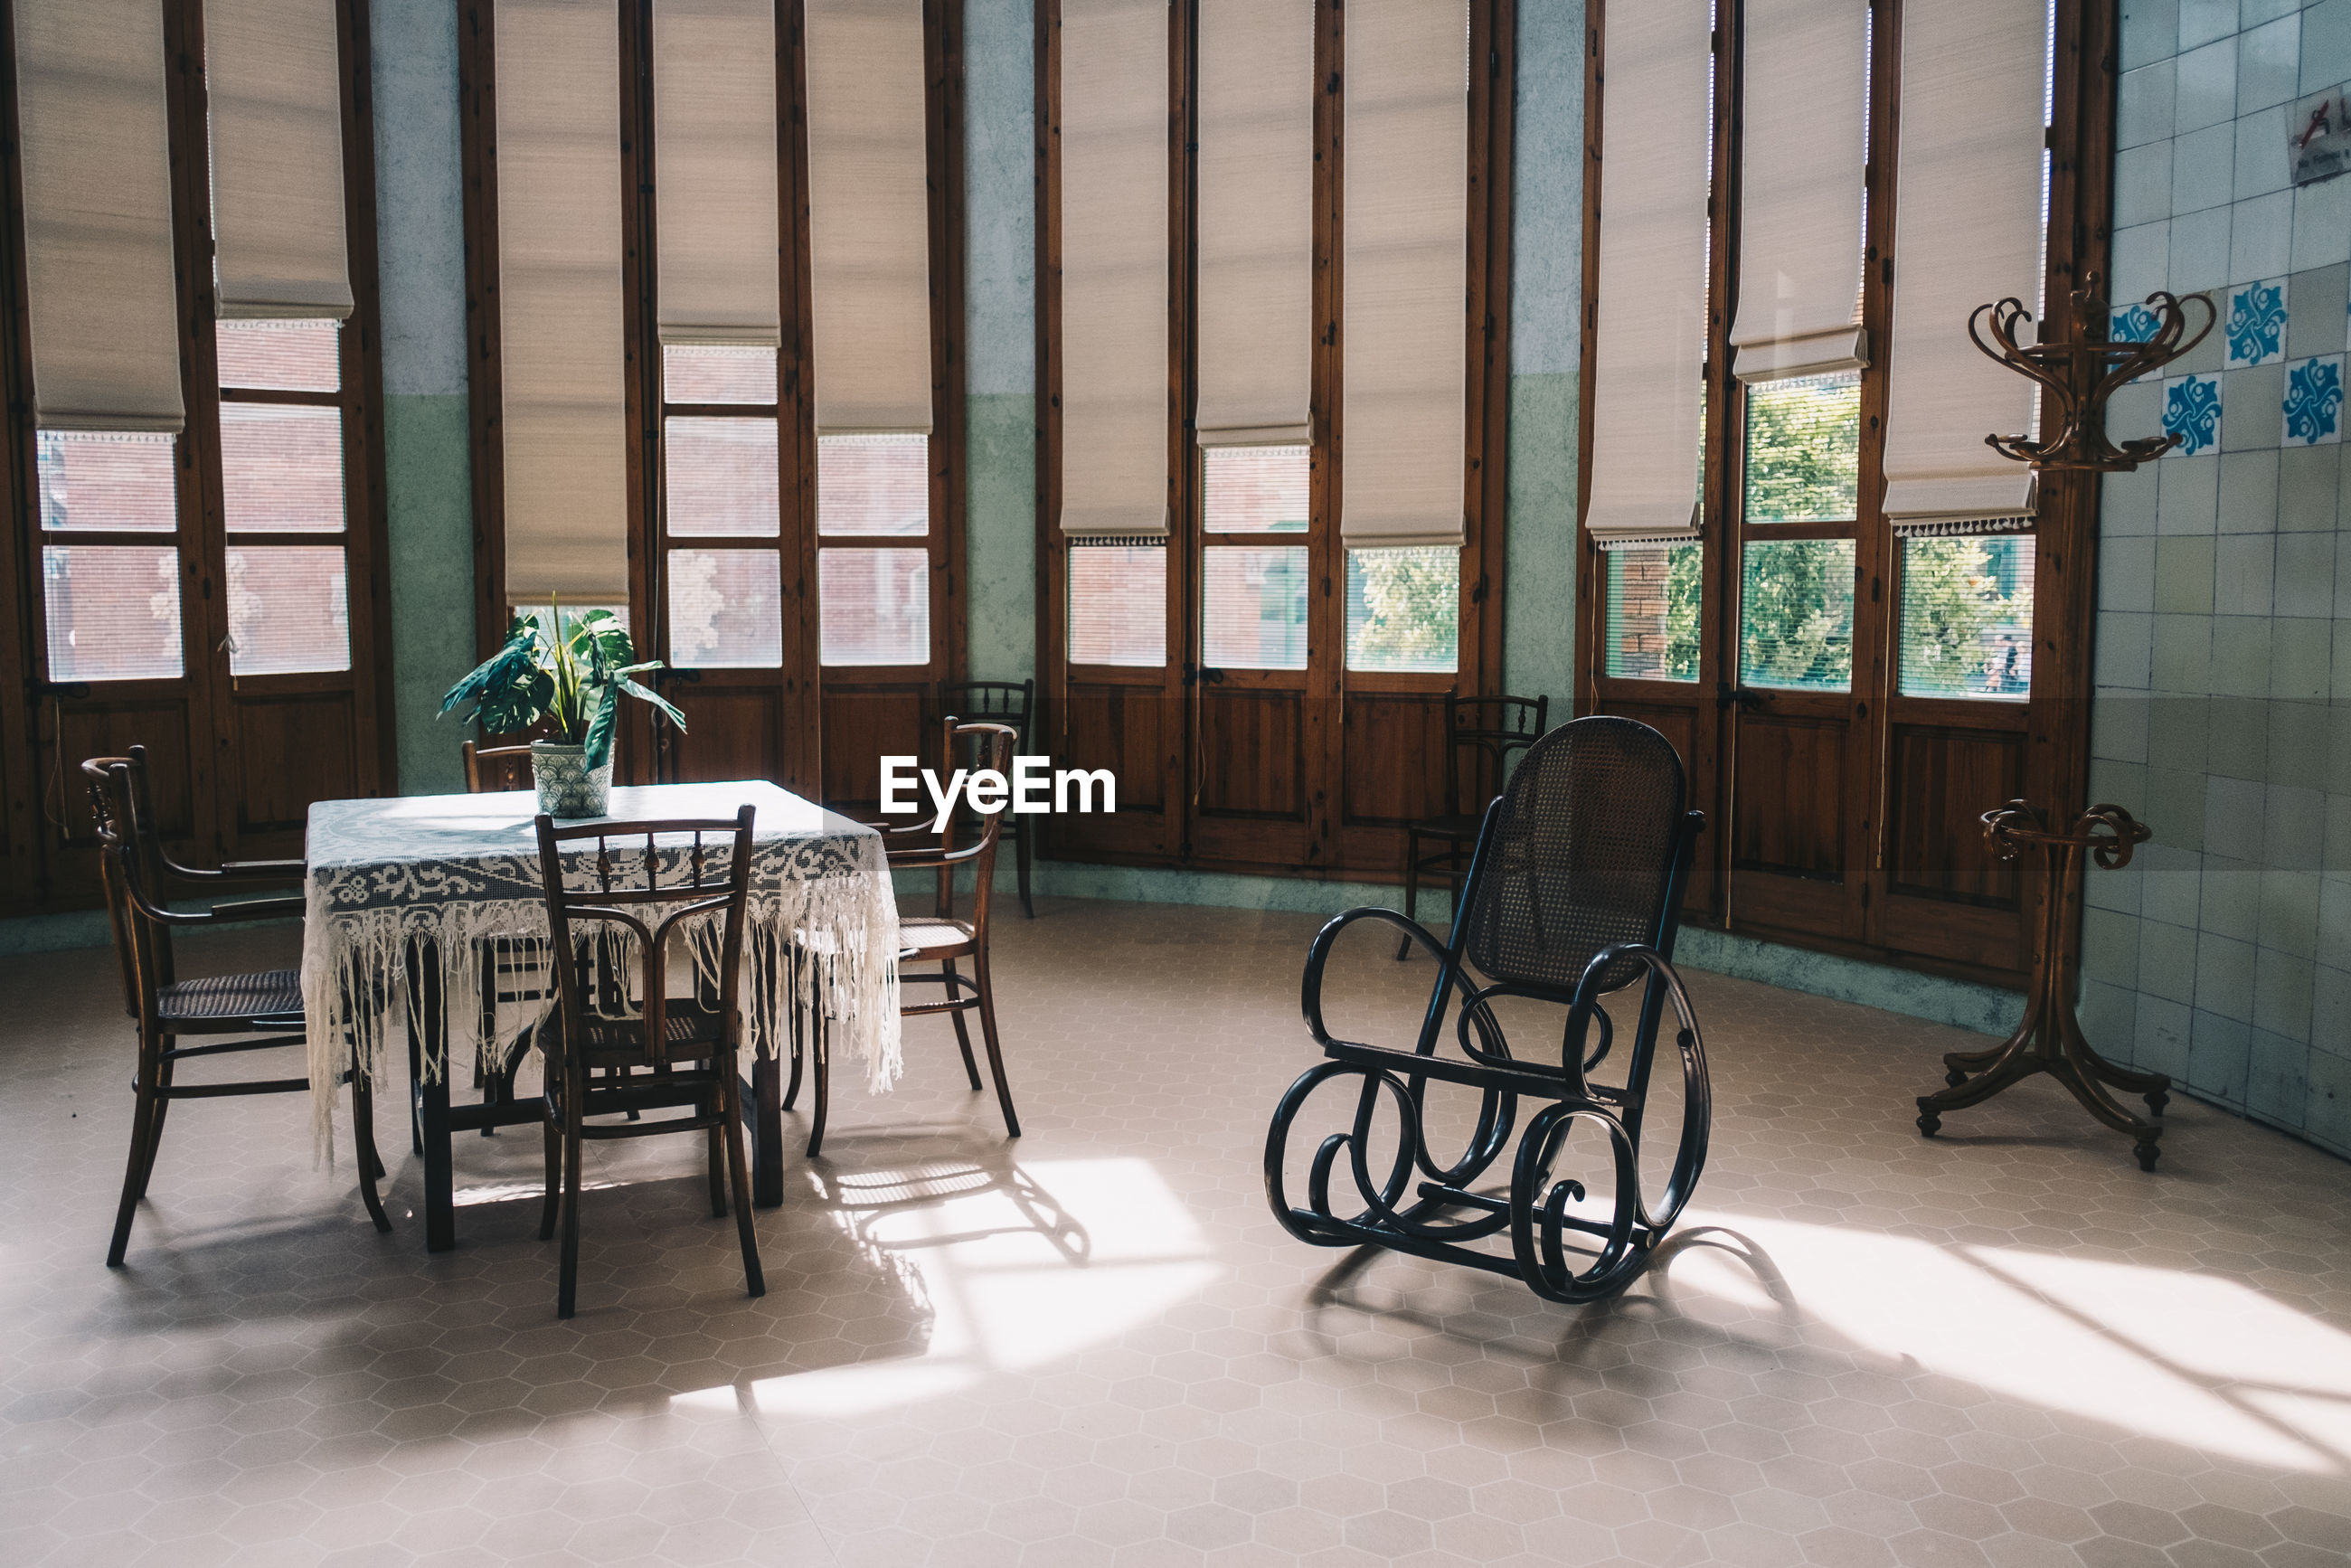 EMPTY CHAIRS AND TABLES IN ROOM